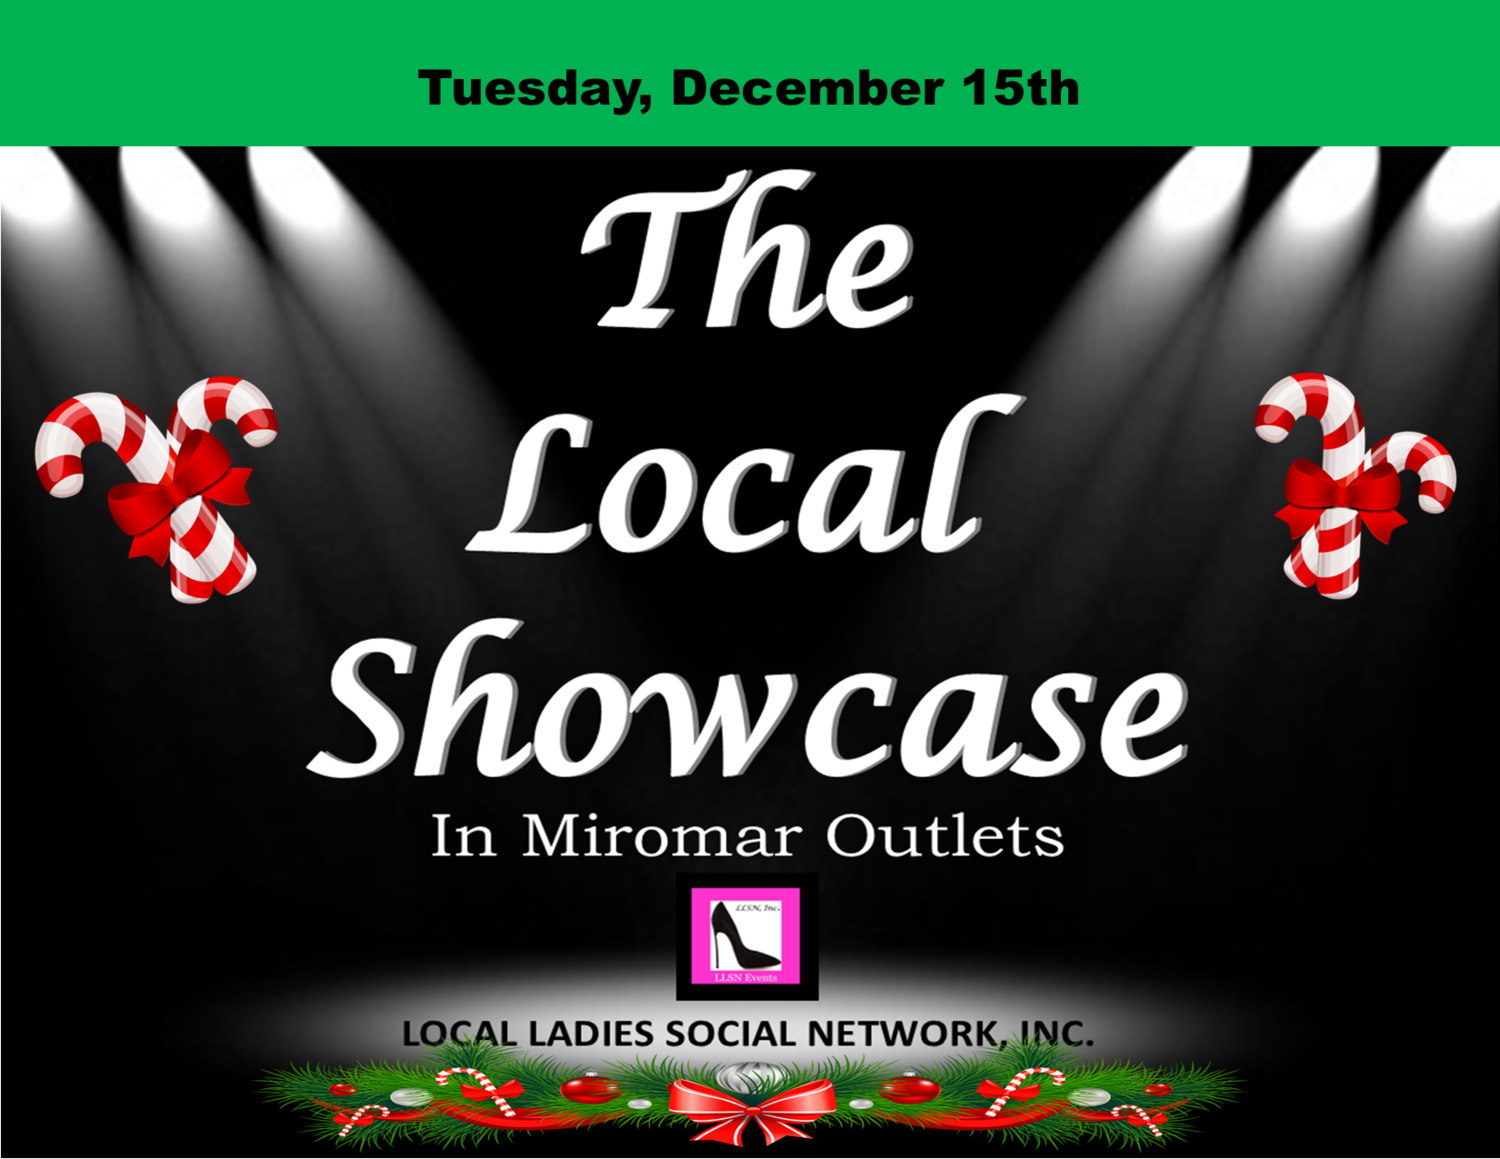 Tuesday, December 15th 11am-7pm.